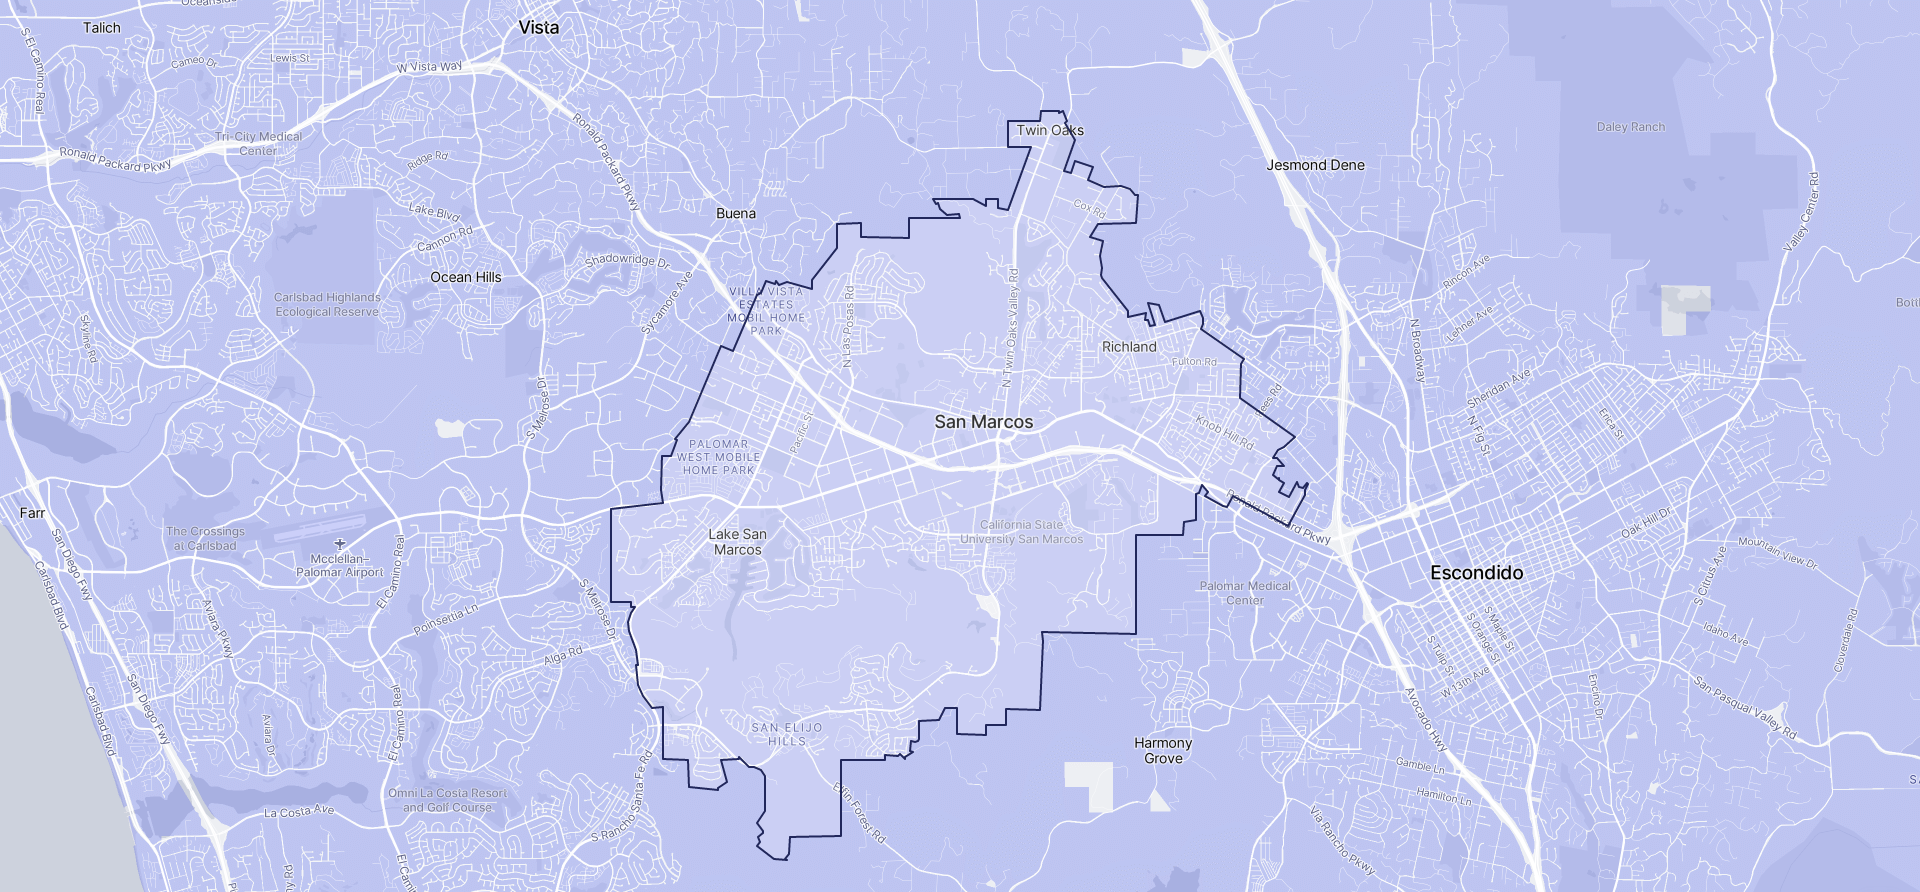 Image of San Marcos boundaries on a map.